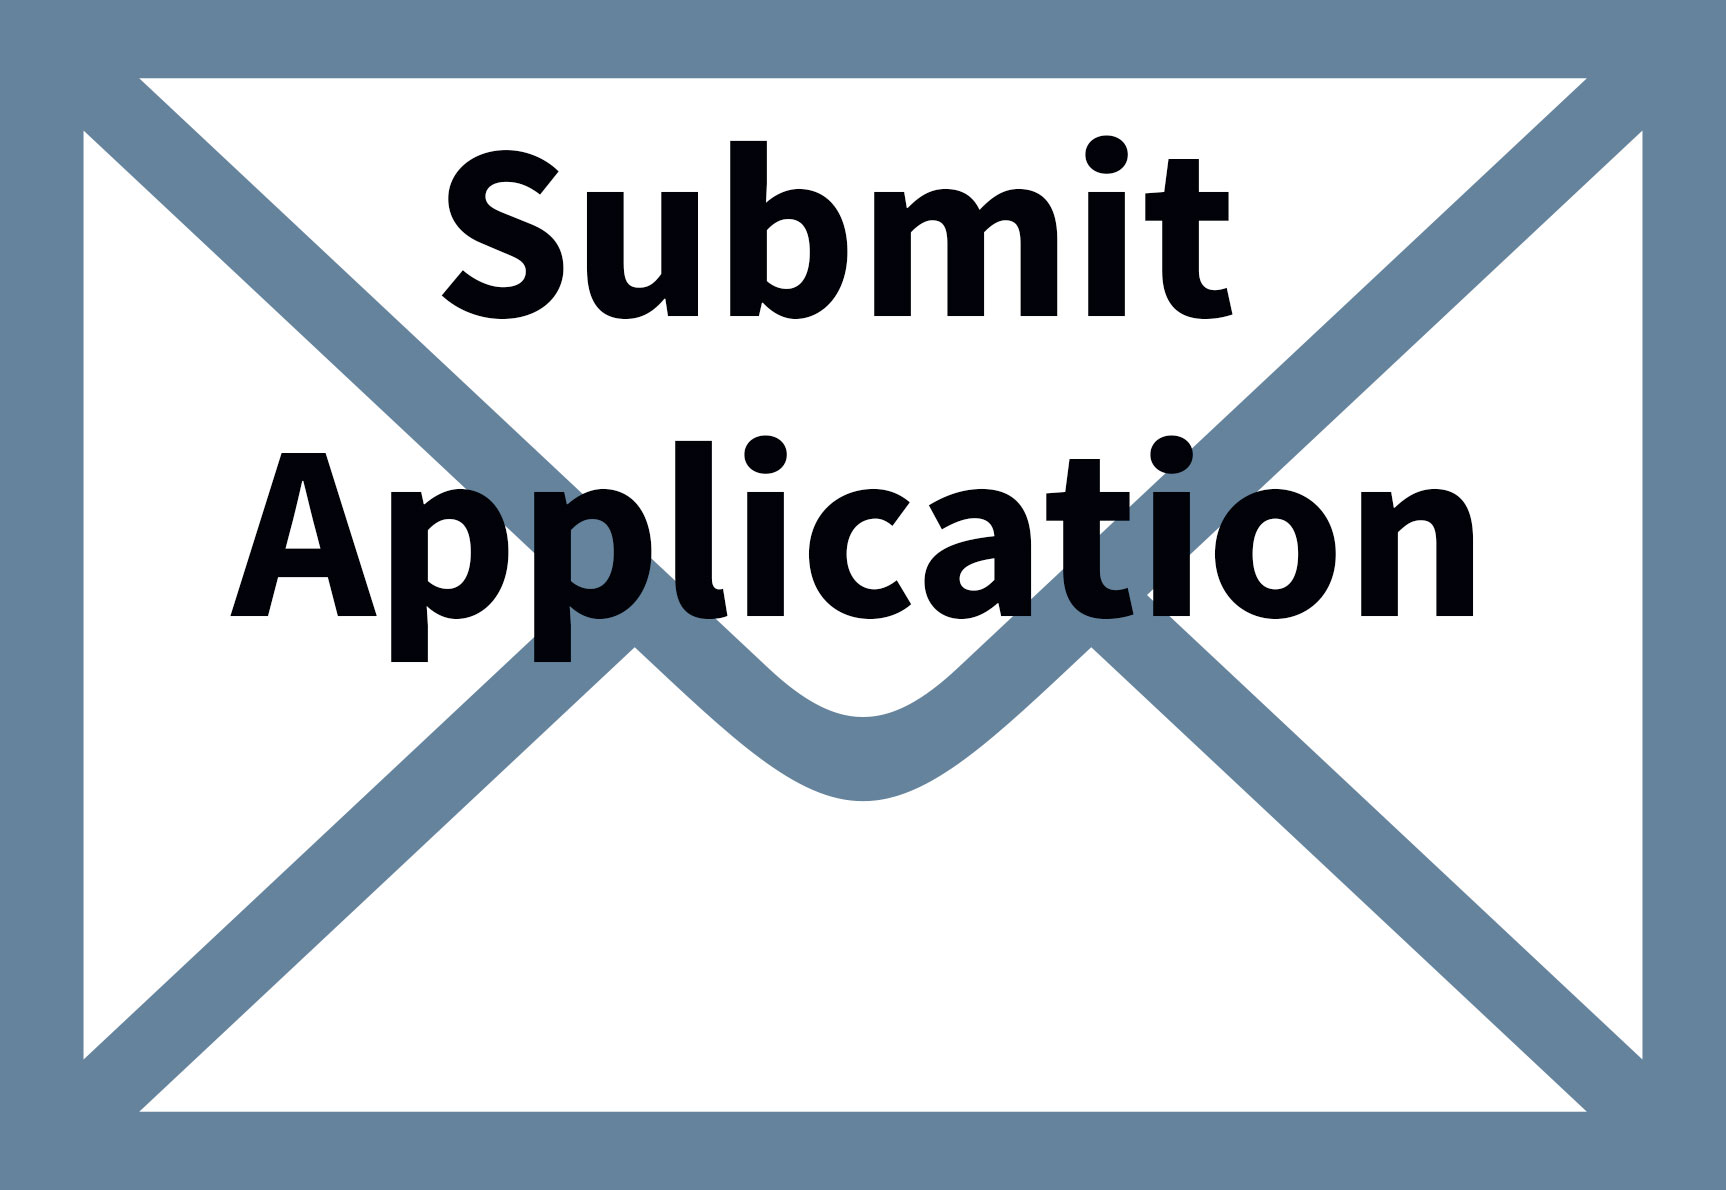 letter button to submit application